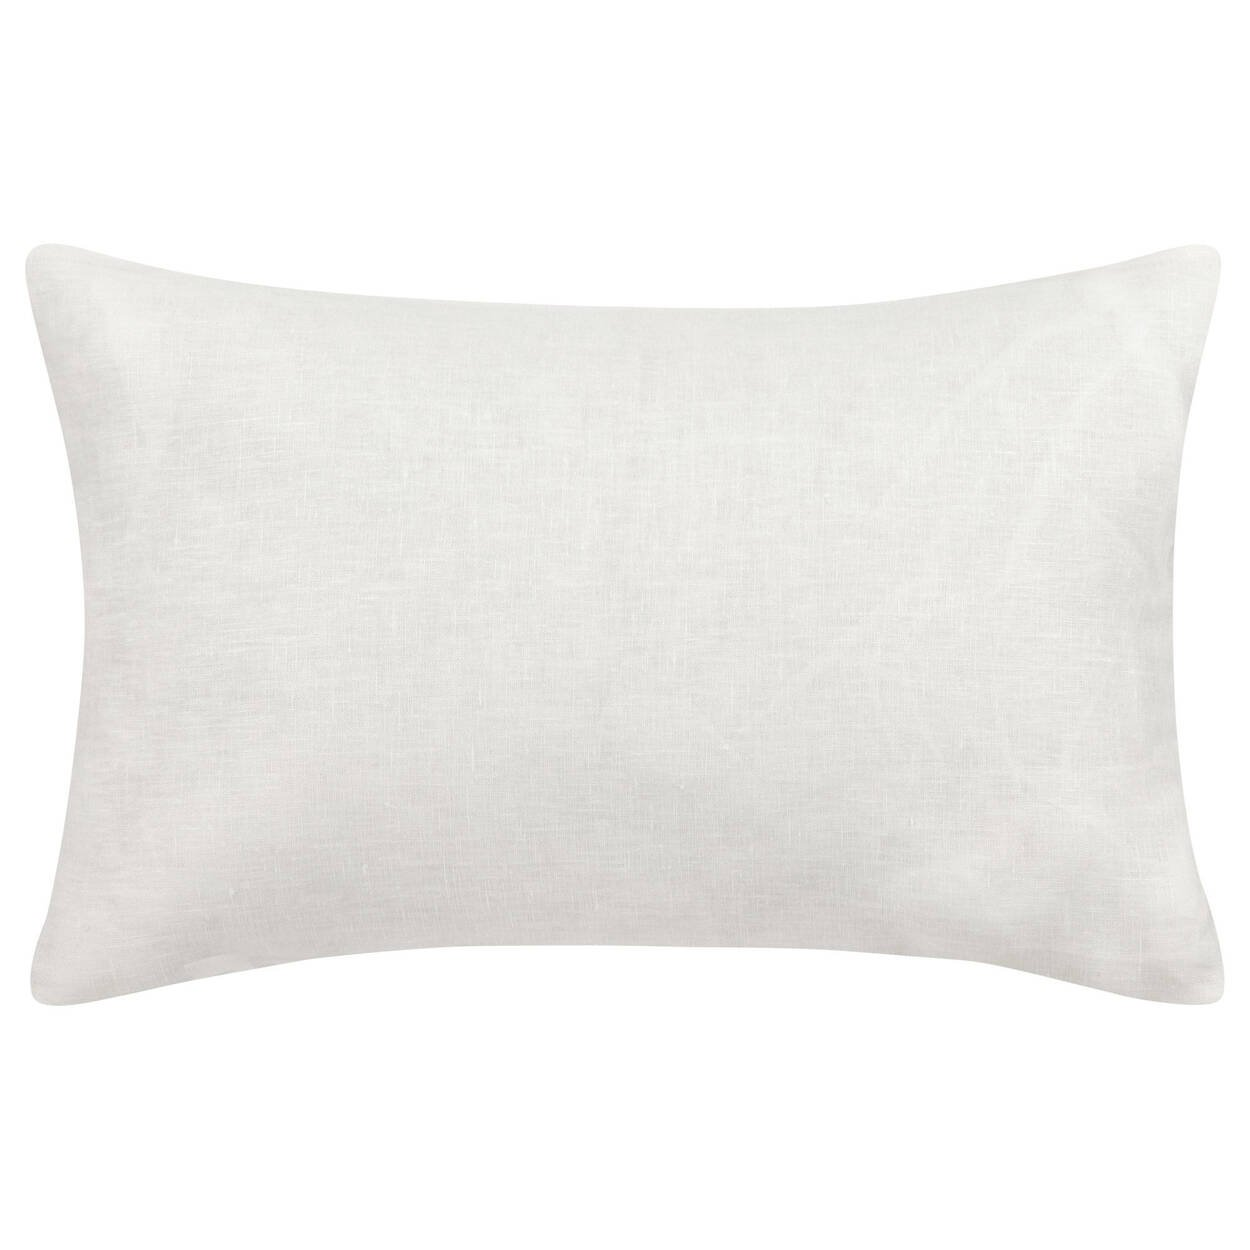 "Naturo Lumbar Decorative Pillow 13"" X 20"""